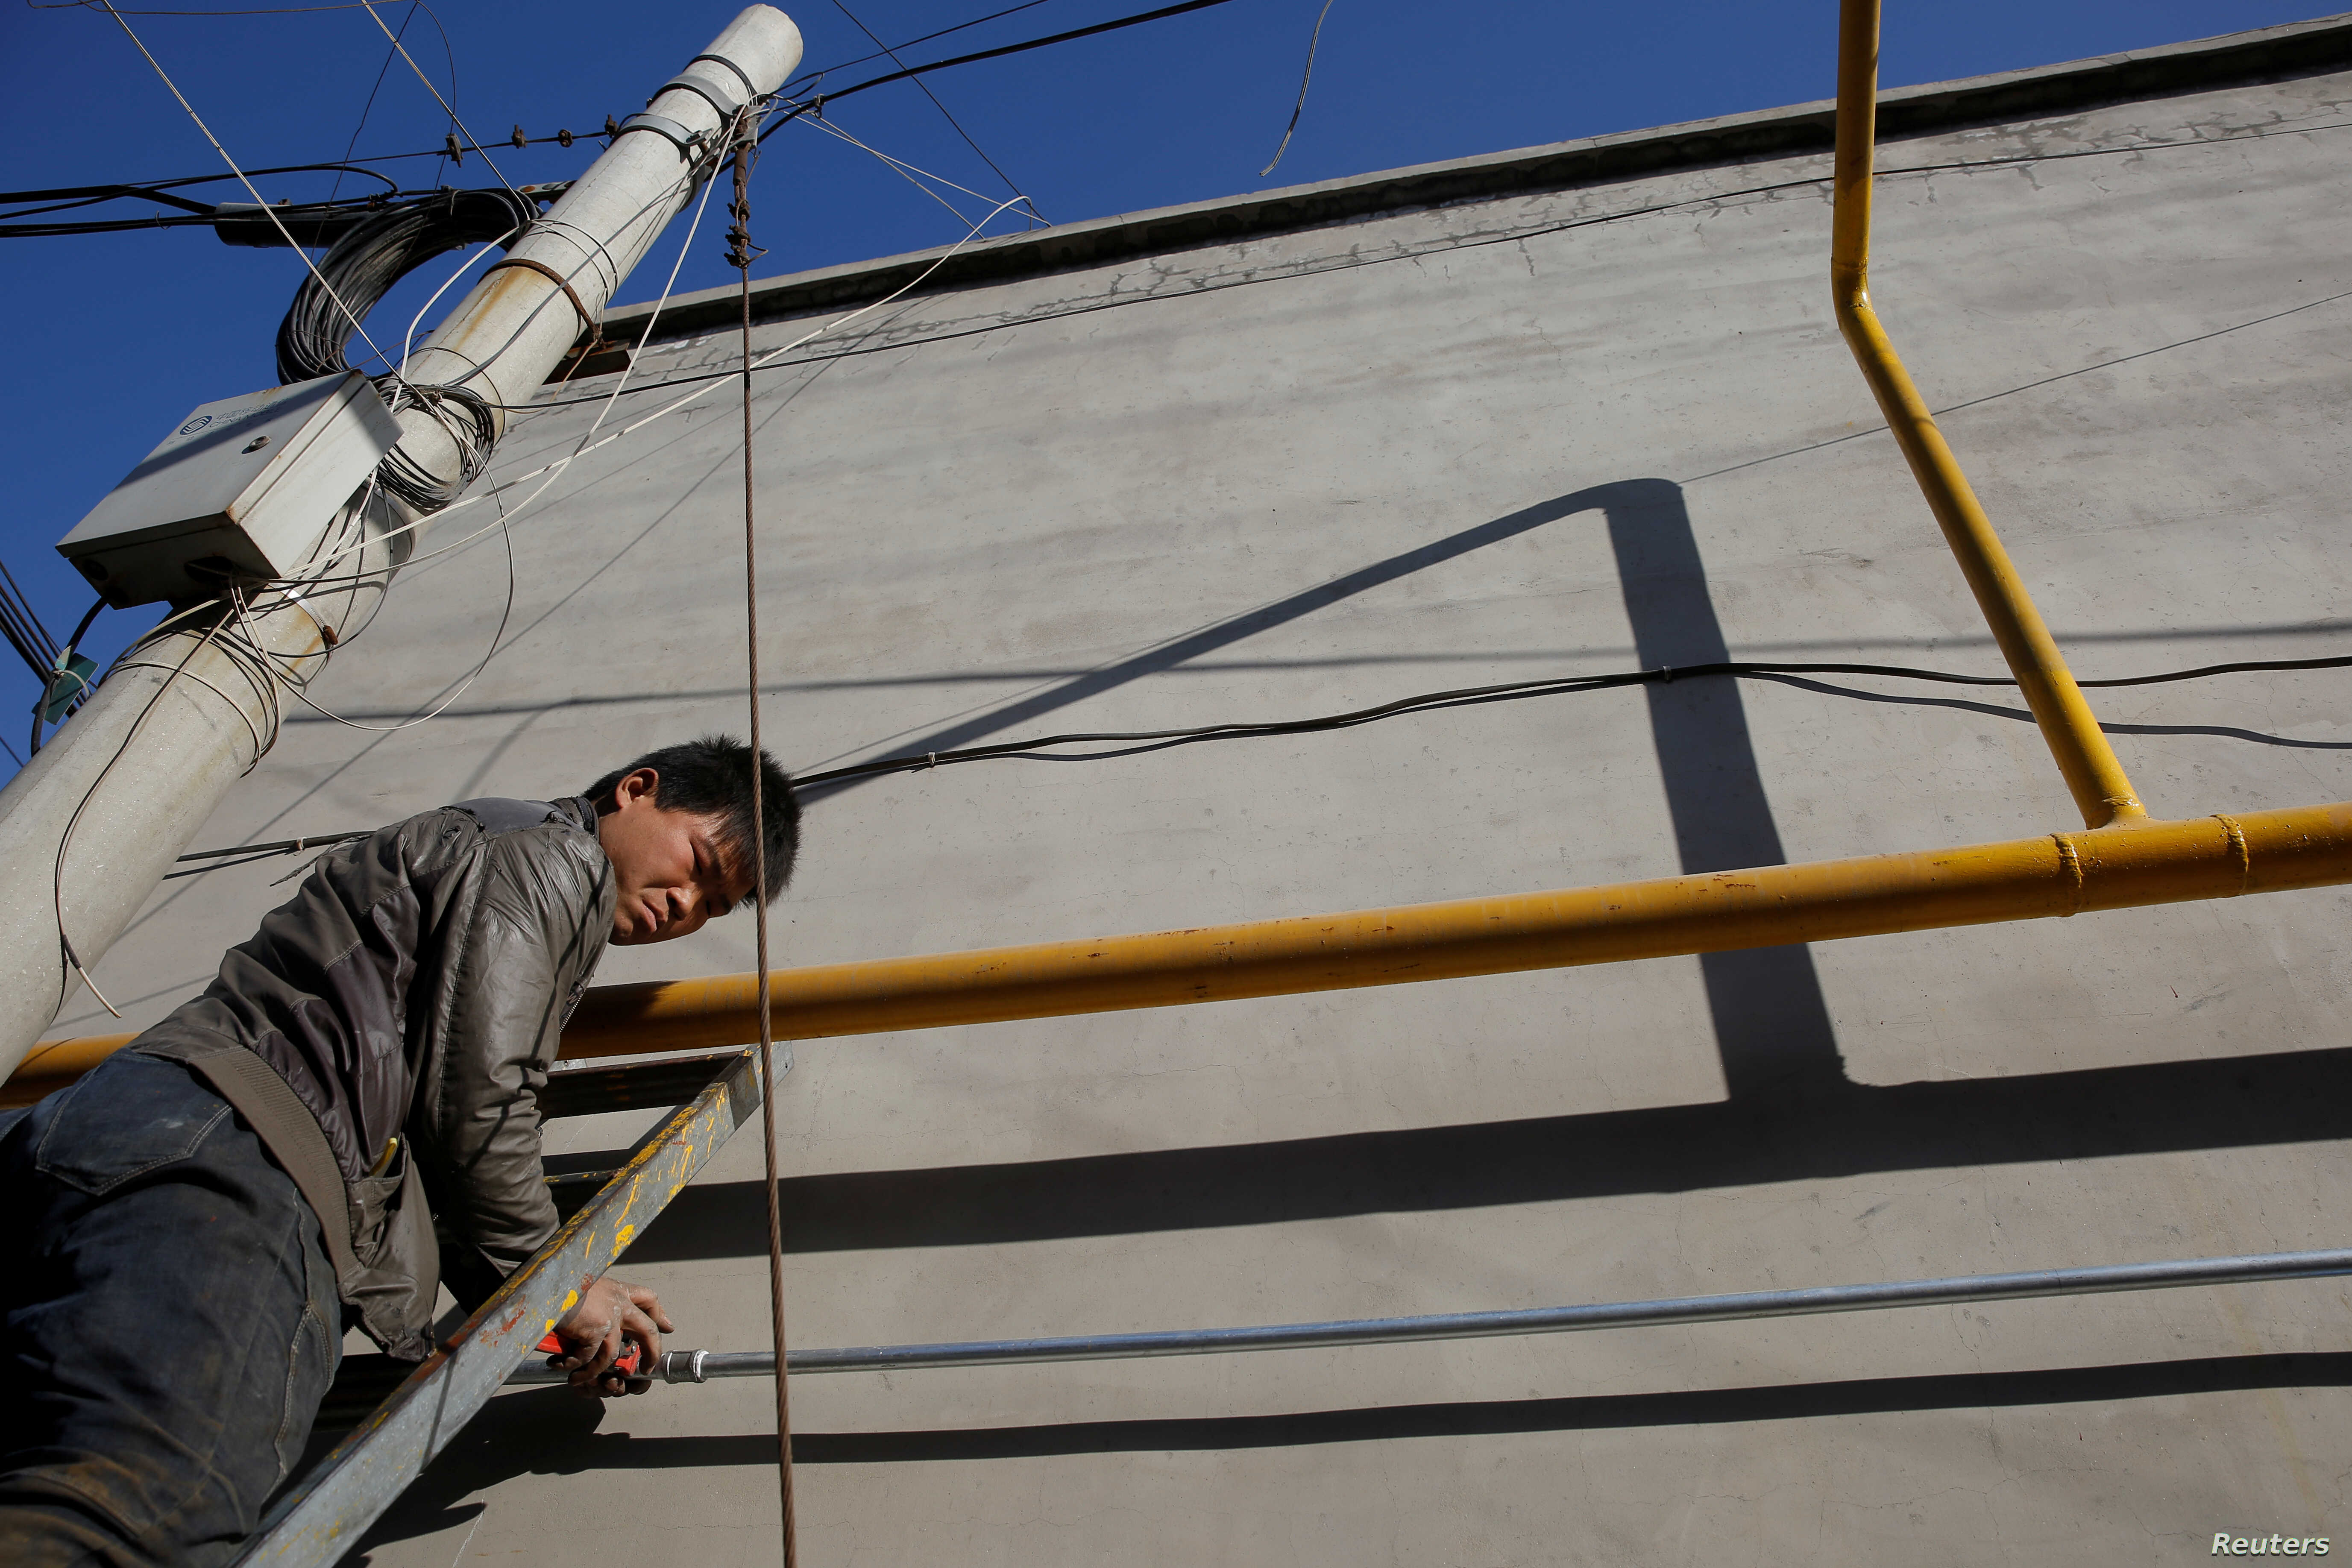 A worker installs gas pipes along the walls of residential houses in the village of Heqiaoxiang outside of Baoding, Hebei province, China, Dec. 5, 2017.